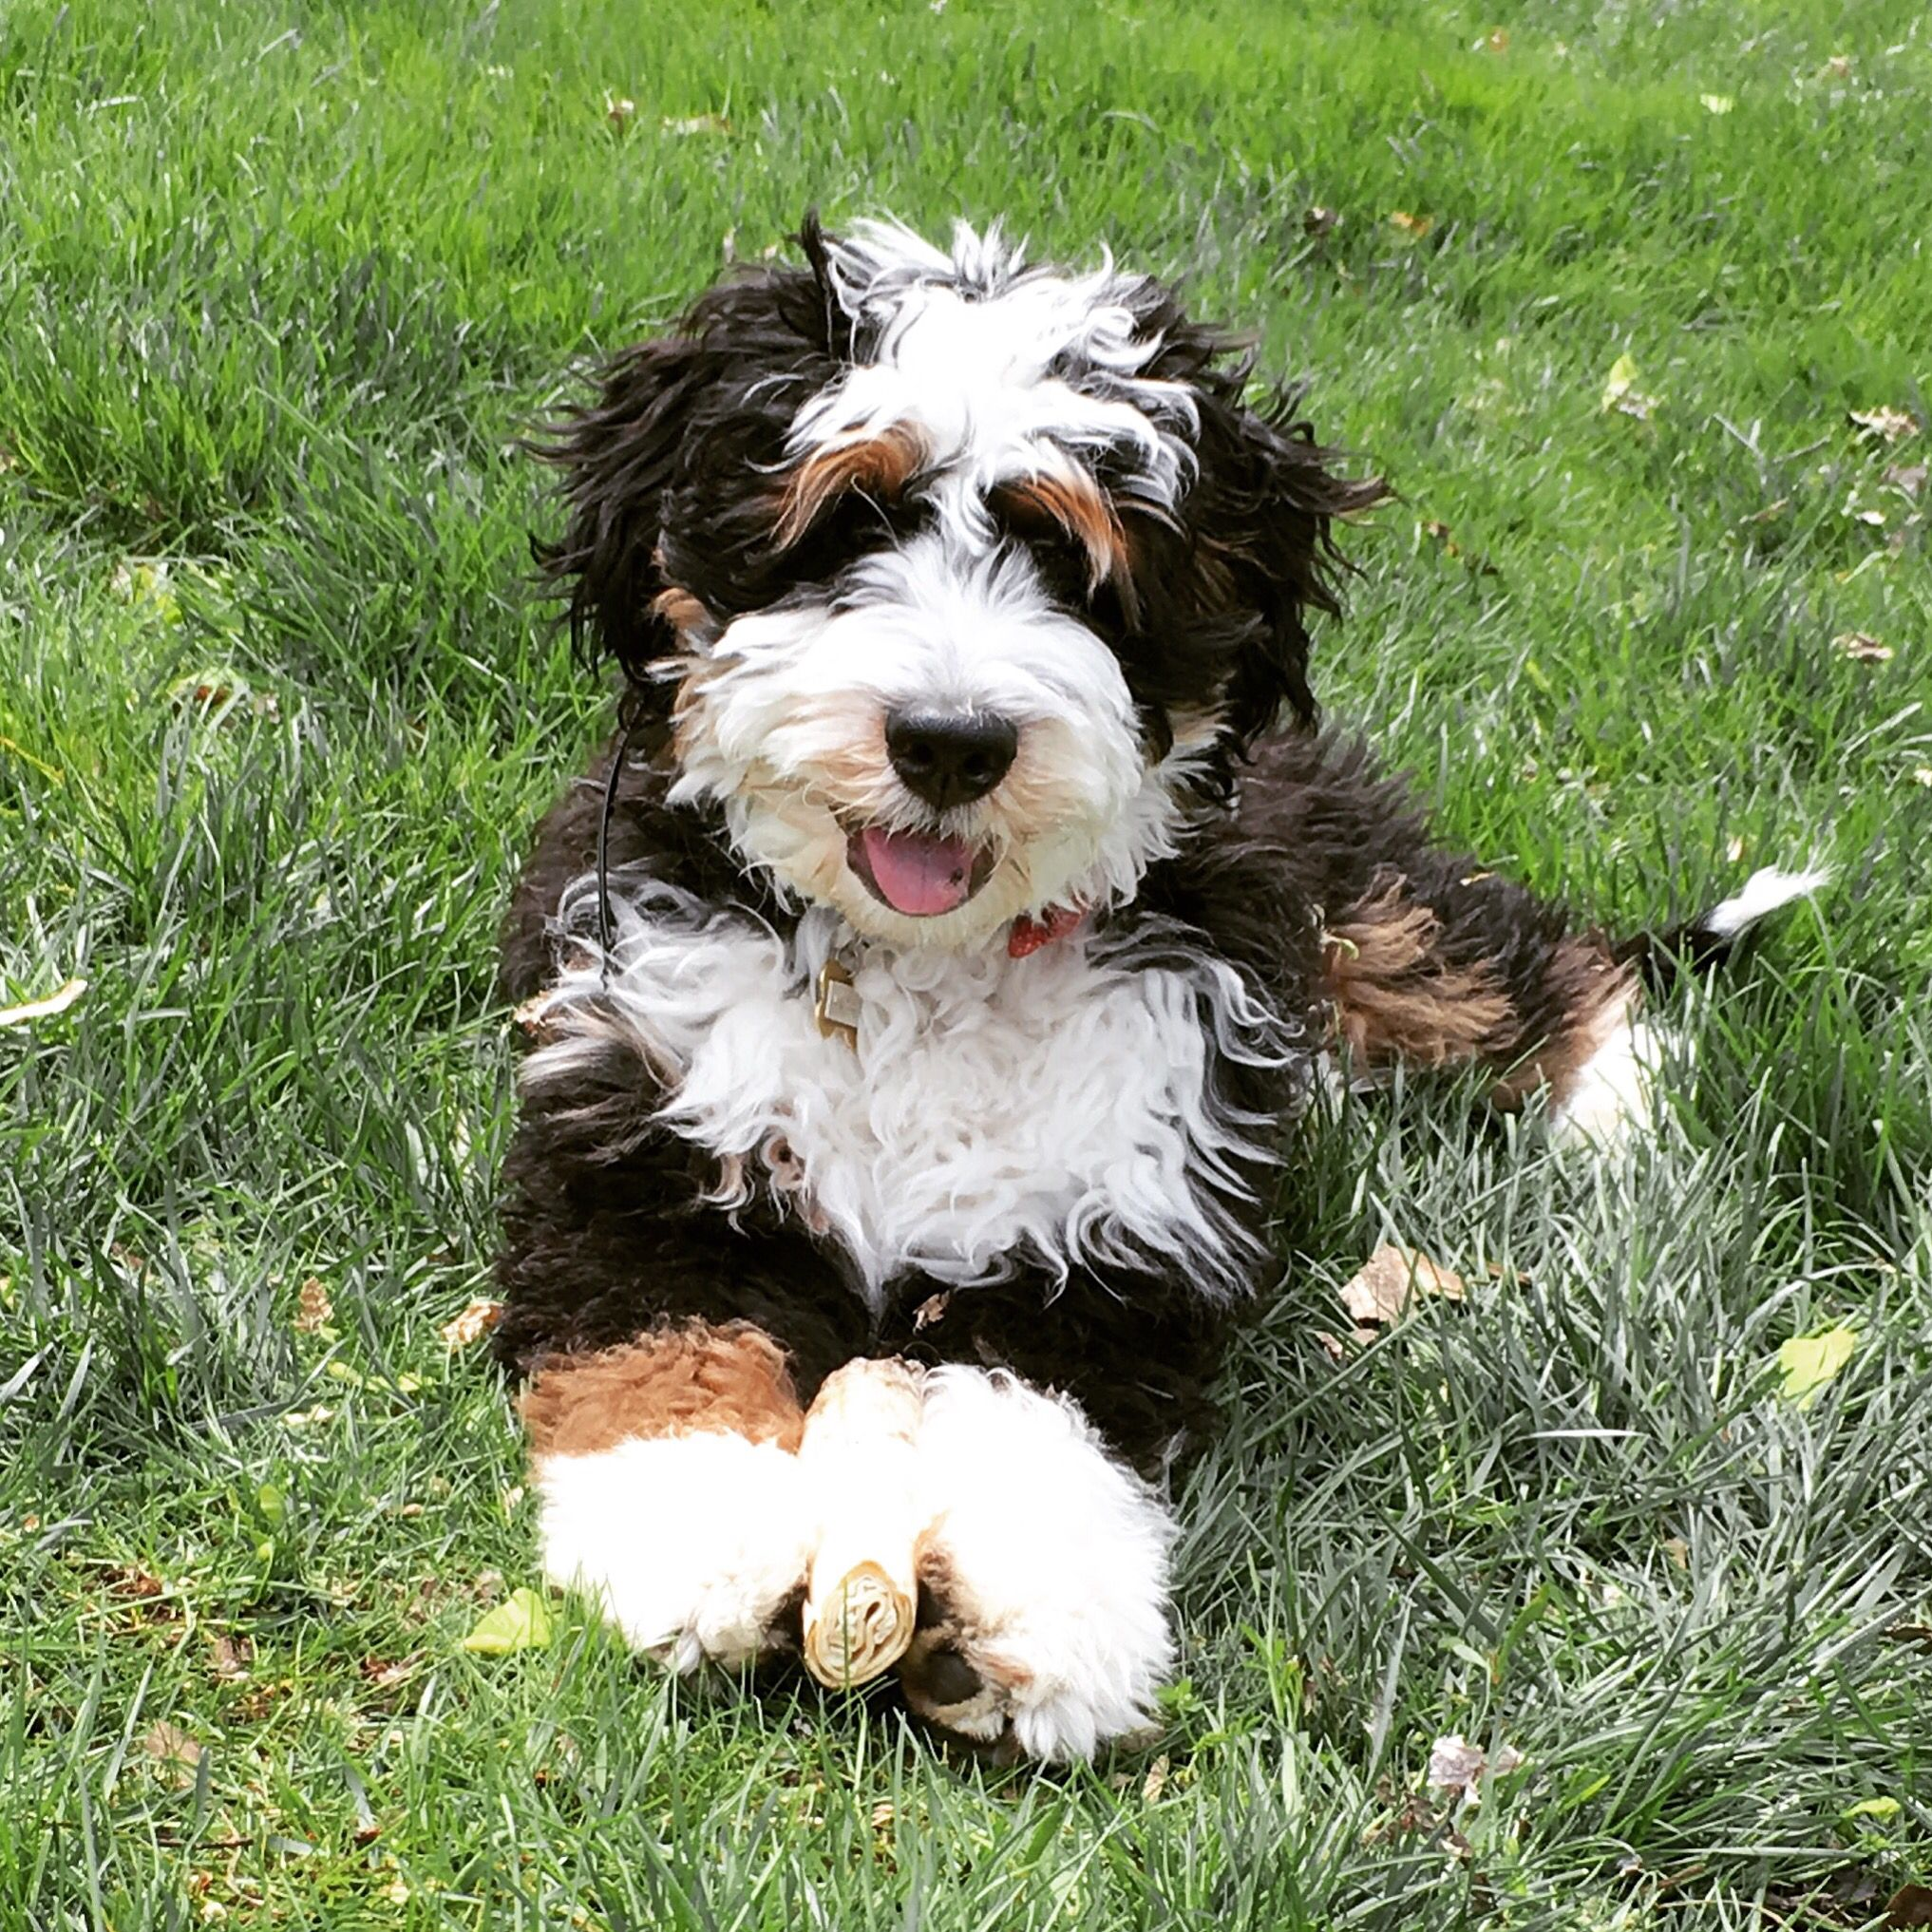 Leroy is a Mini Bernedoodle Puppy from Hackman's Miniature